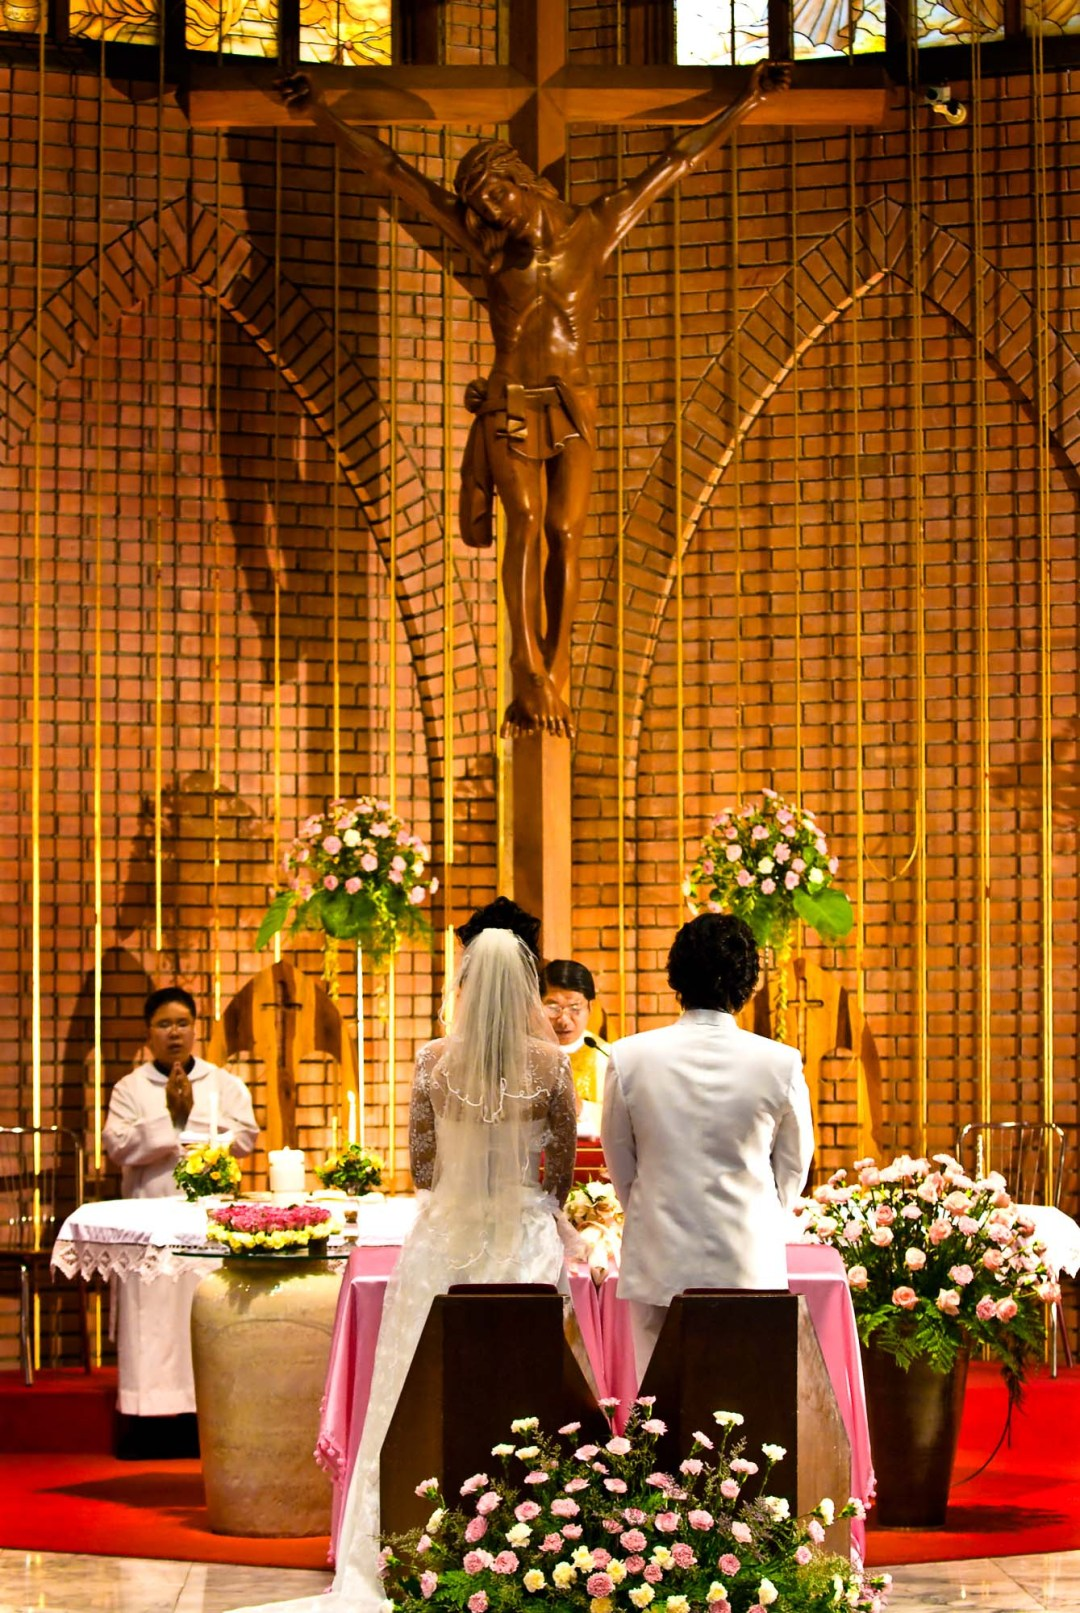 Wedding at Saint John's Church in Bangkok Thailand | Bangkok Wedding Photography